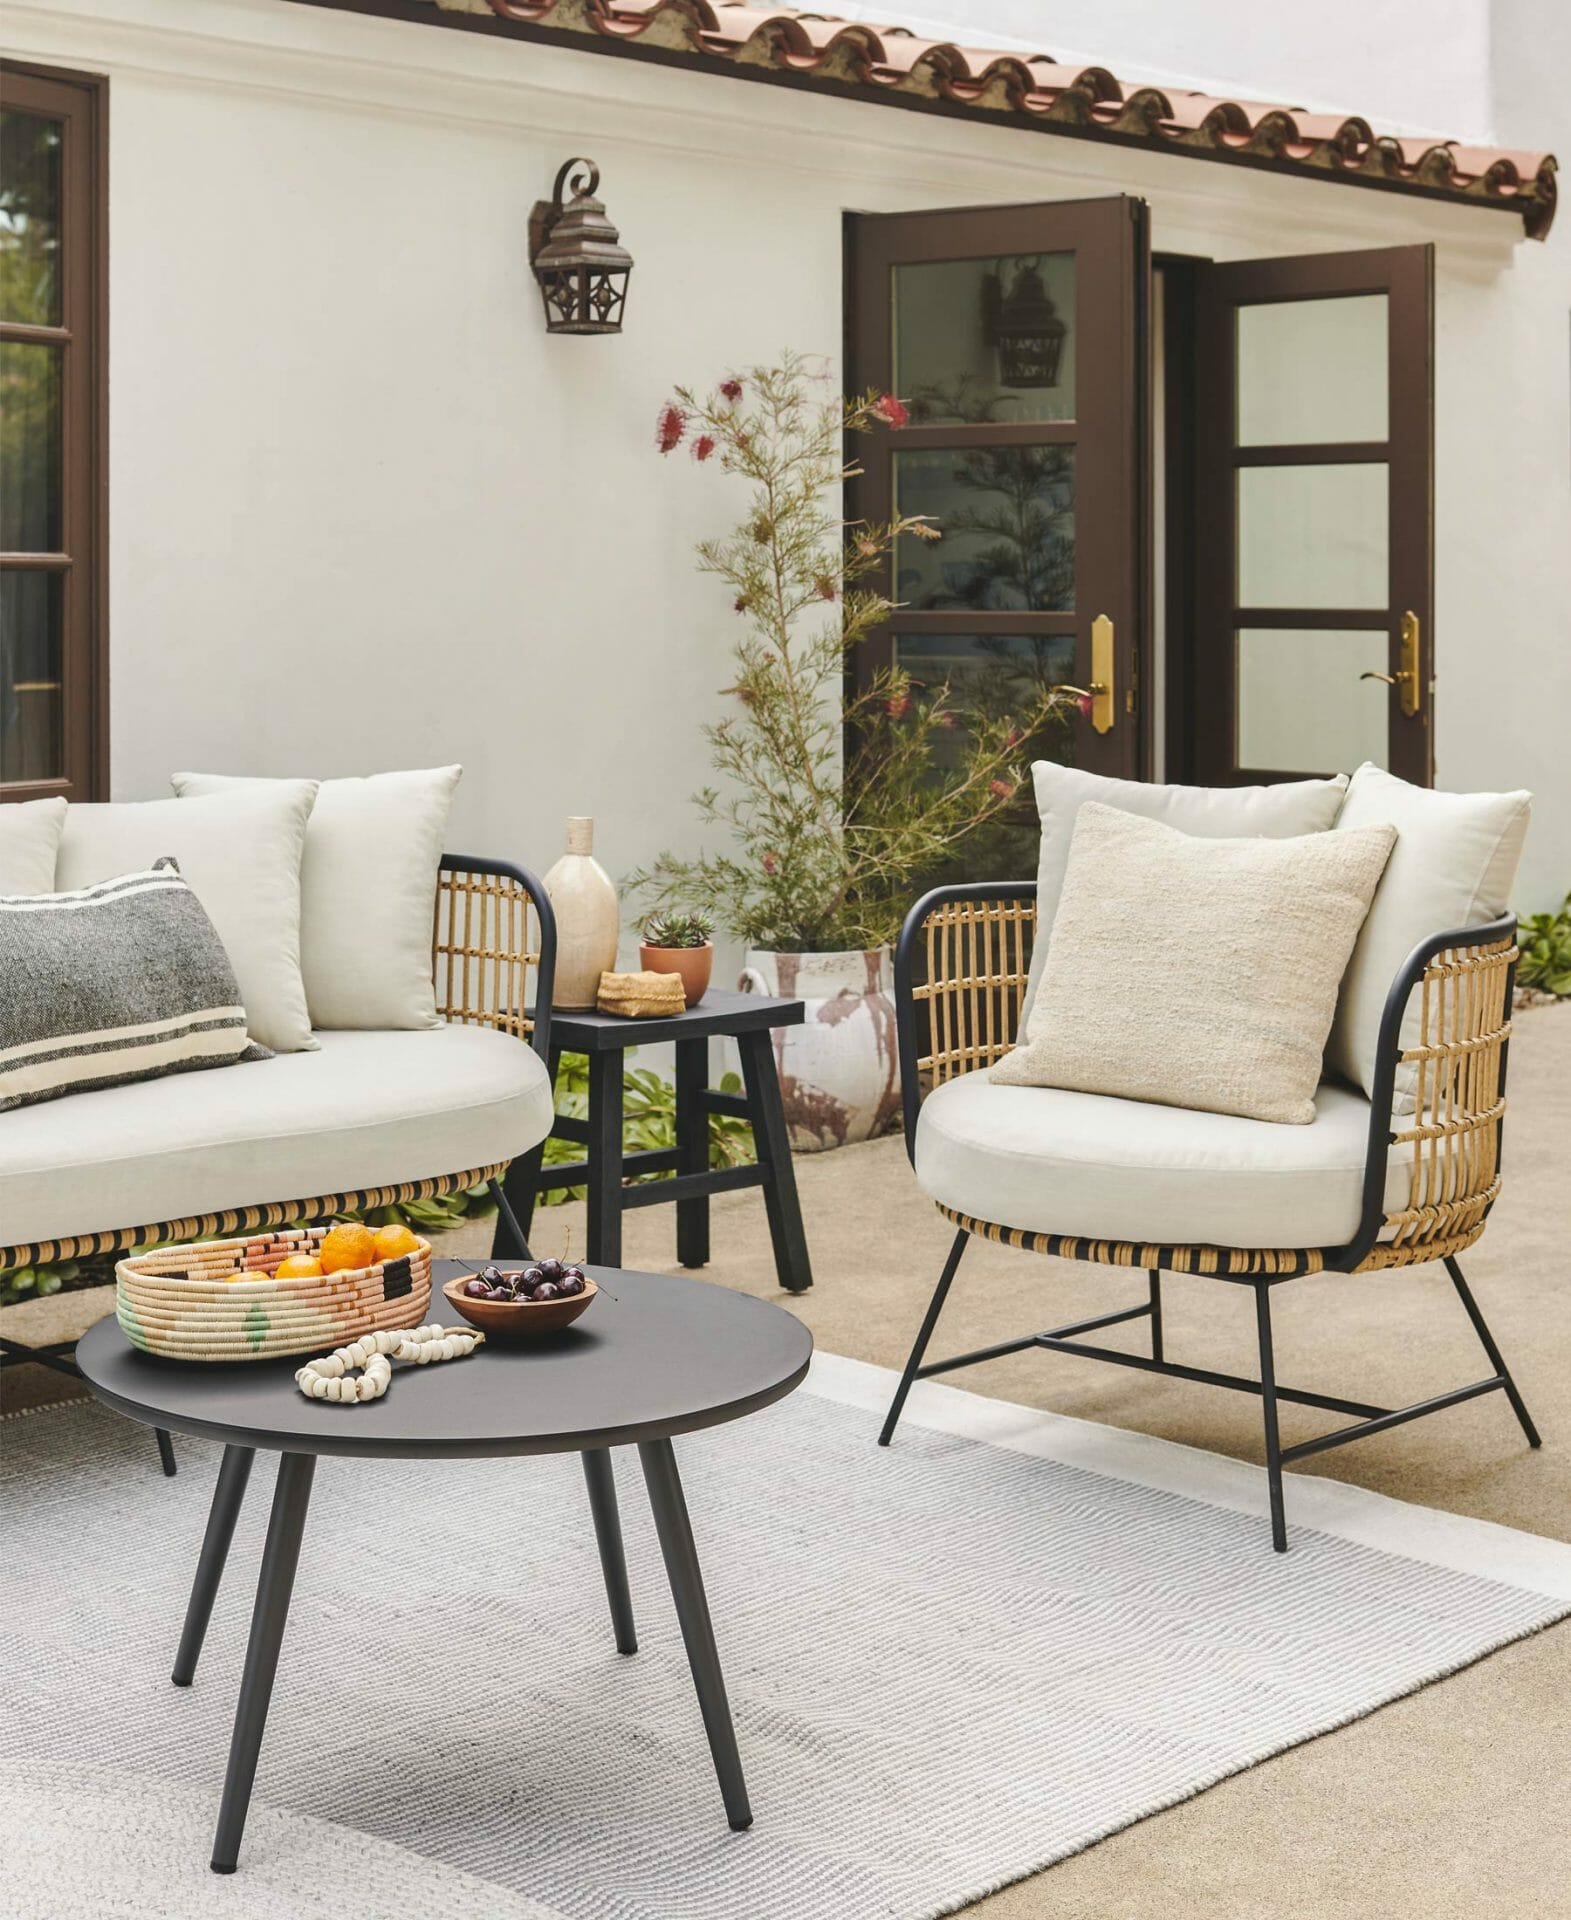 The Onya Set and Redondo Rug are shown next to a Spanish style villa.